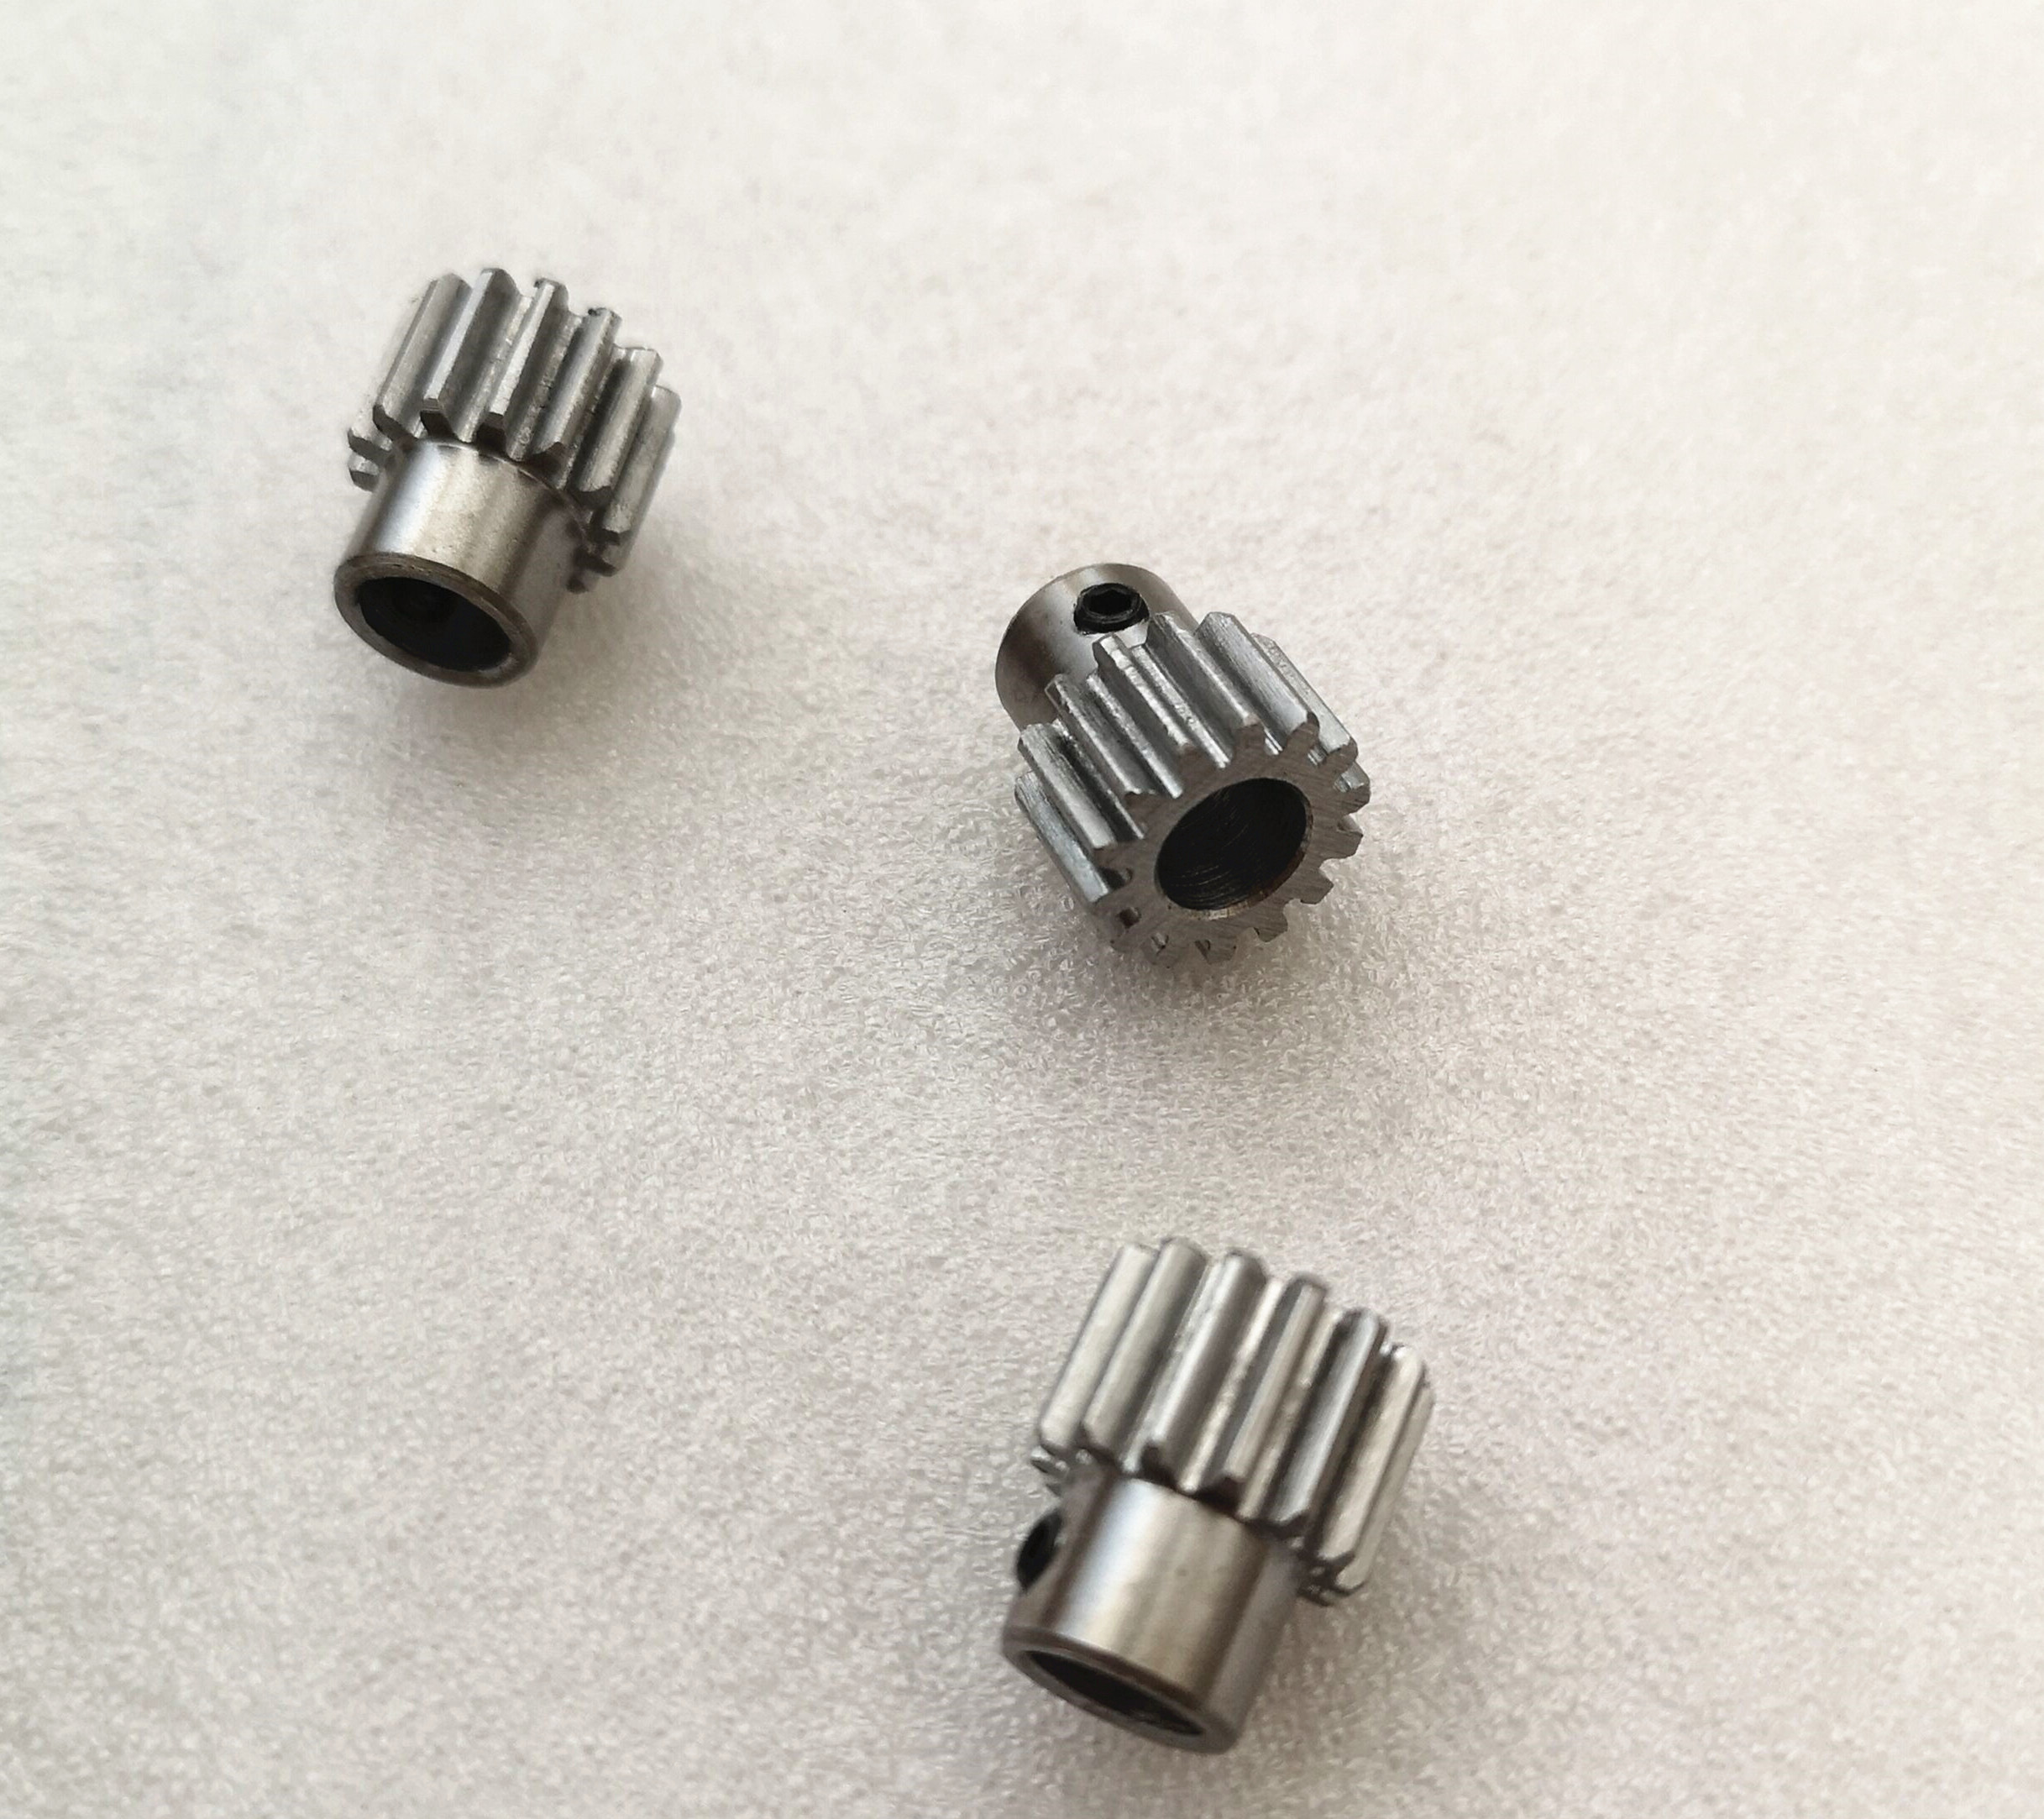 1 Modulus Steel Gear 1M <font><b>12</b></font> 13 14 15 16 17 1819 Teeth Metal gear Hole 3 3.17 5 6 6.35 <font><b>7</b></font> 8 9 10 11 <font><b>12</b></font> <font><b>mm</b></font> diameter Machine image